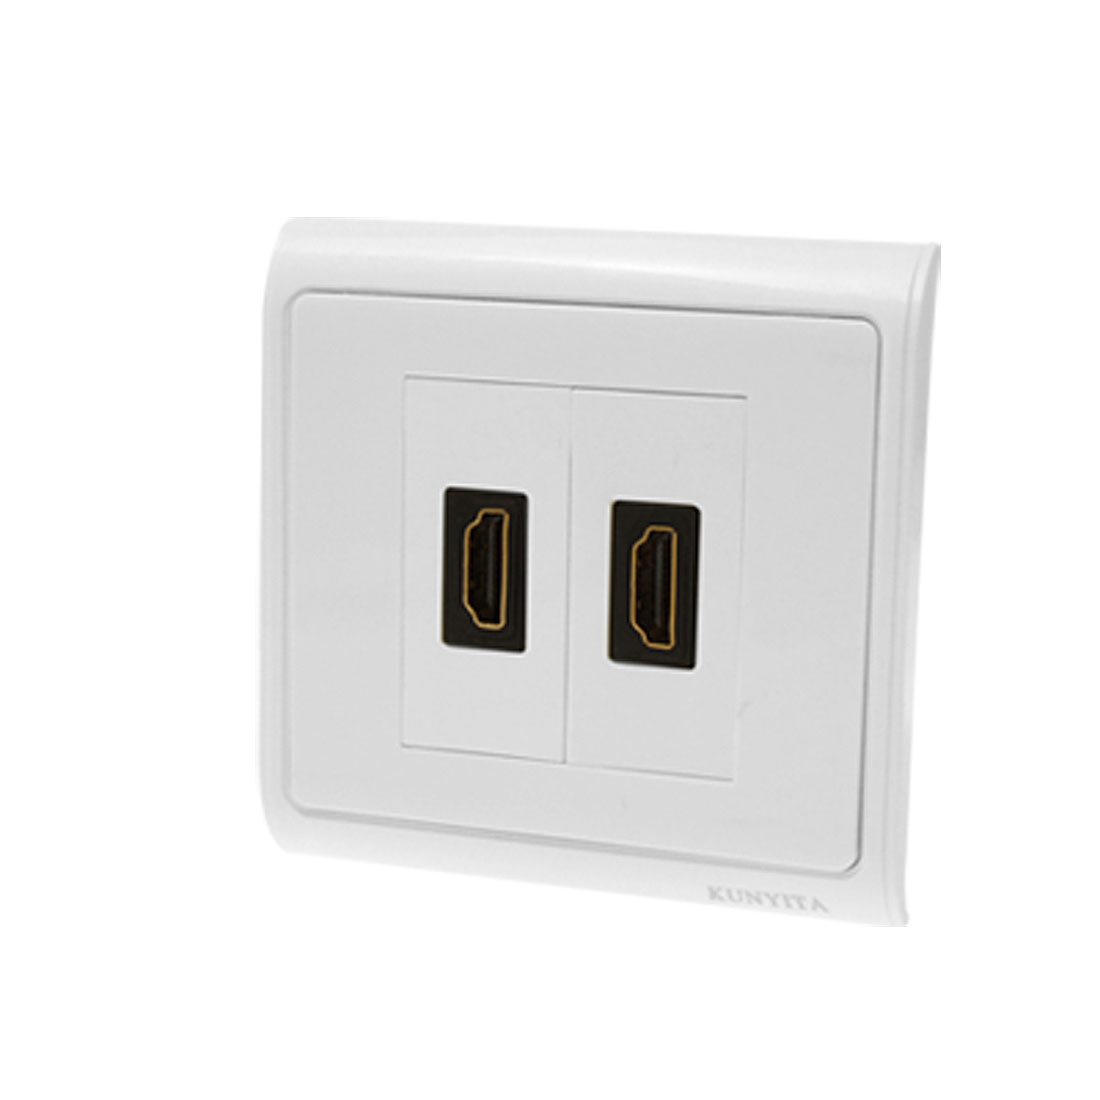 HDMI Wall Plate Two Female Port Outlet Panel Cover